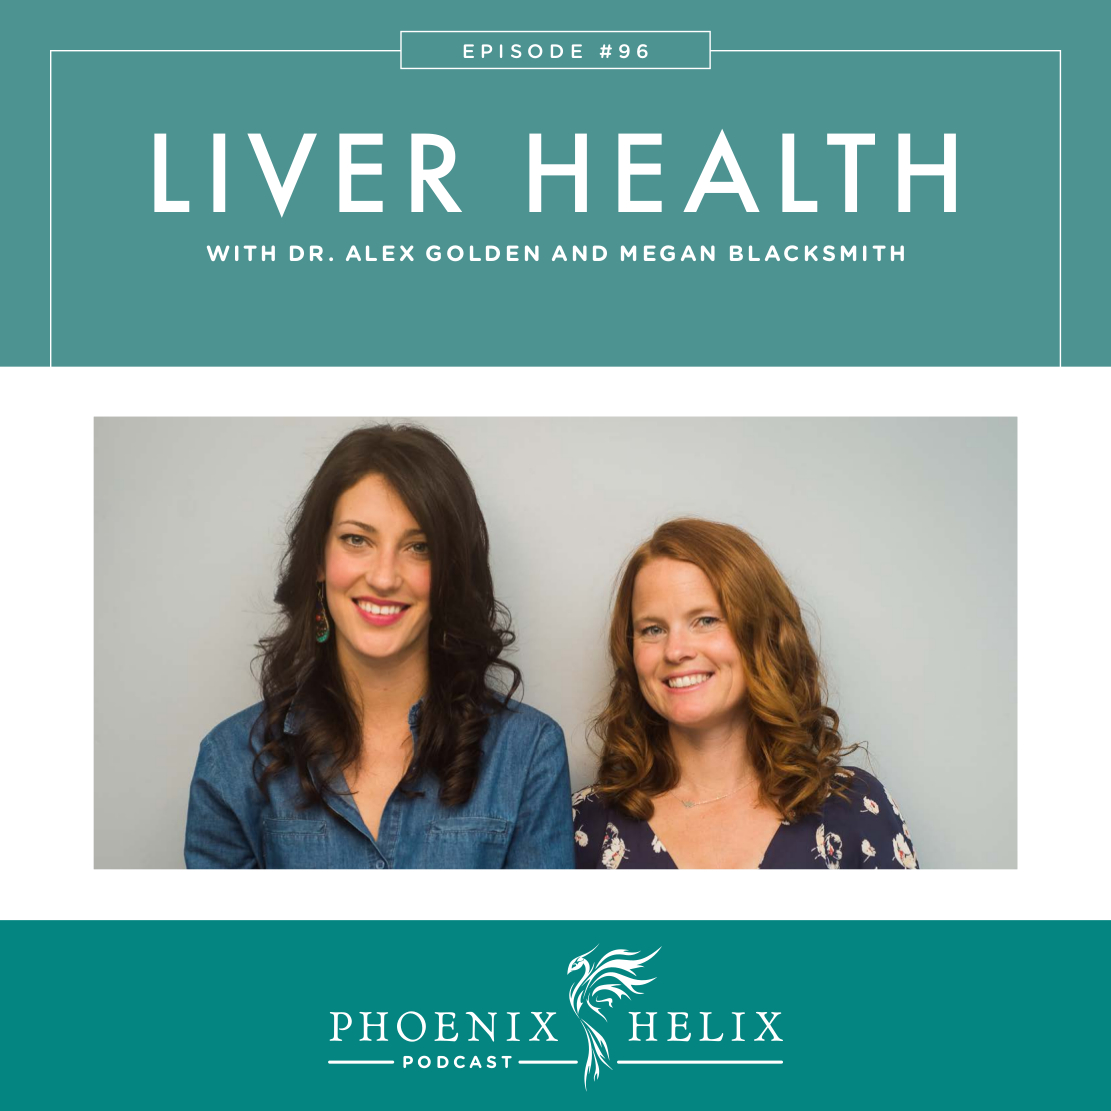 Liver Health with Dr. Alex Golden and Megan Blacksmith | Phoenix Helix Podcast